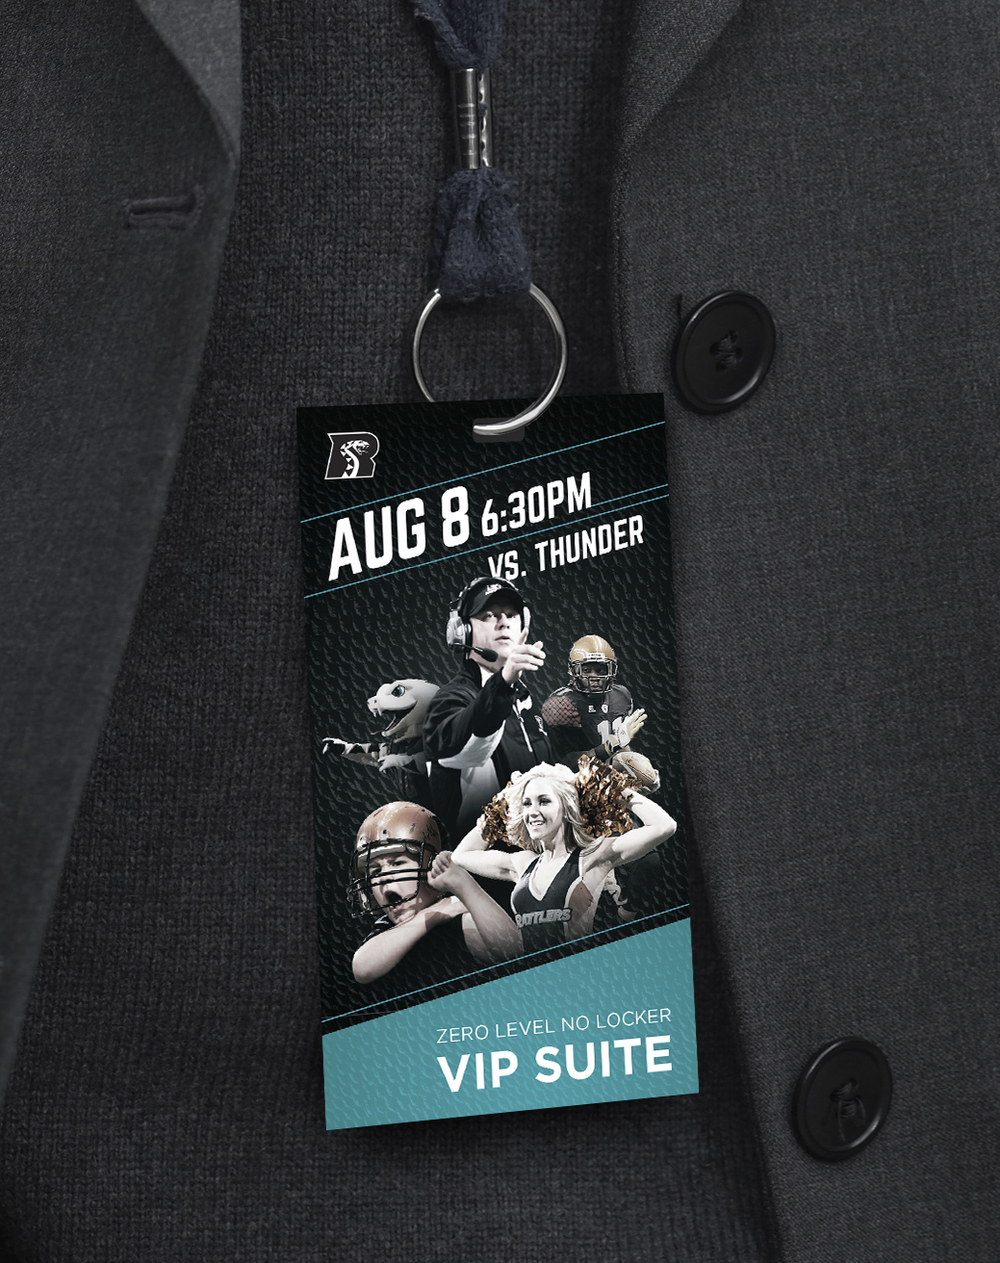 Arizona Rattlers Arena Credentials Art Direction: Katie Blaker, Hugh Mulligan Creative Direction: GG LeMere, Greg Fisher